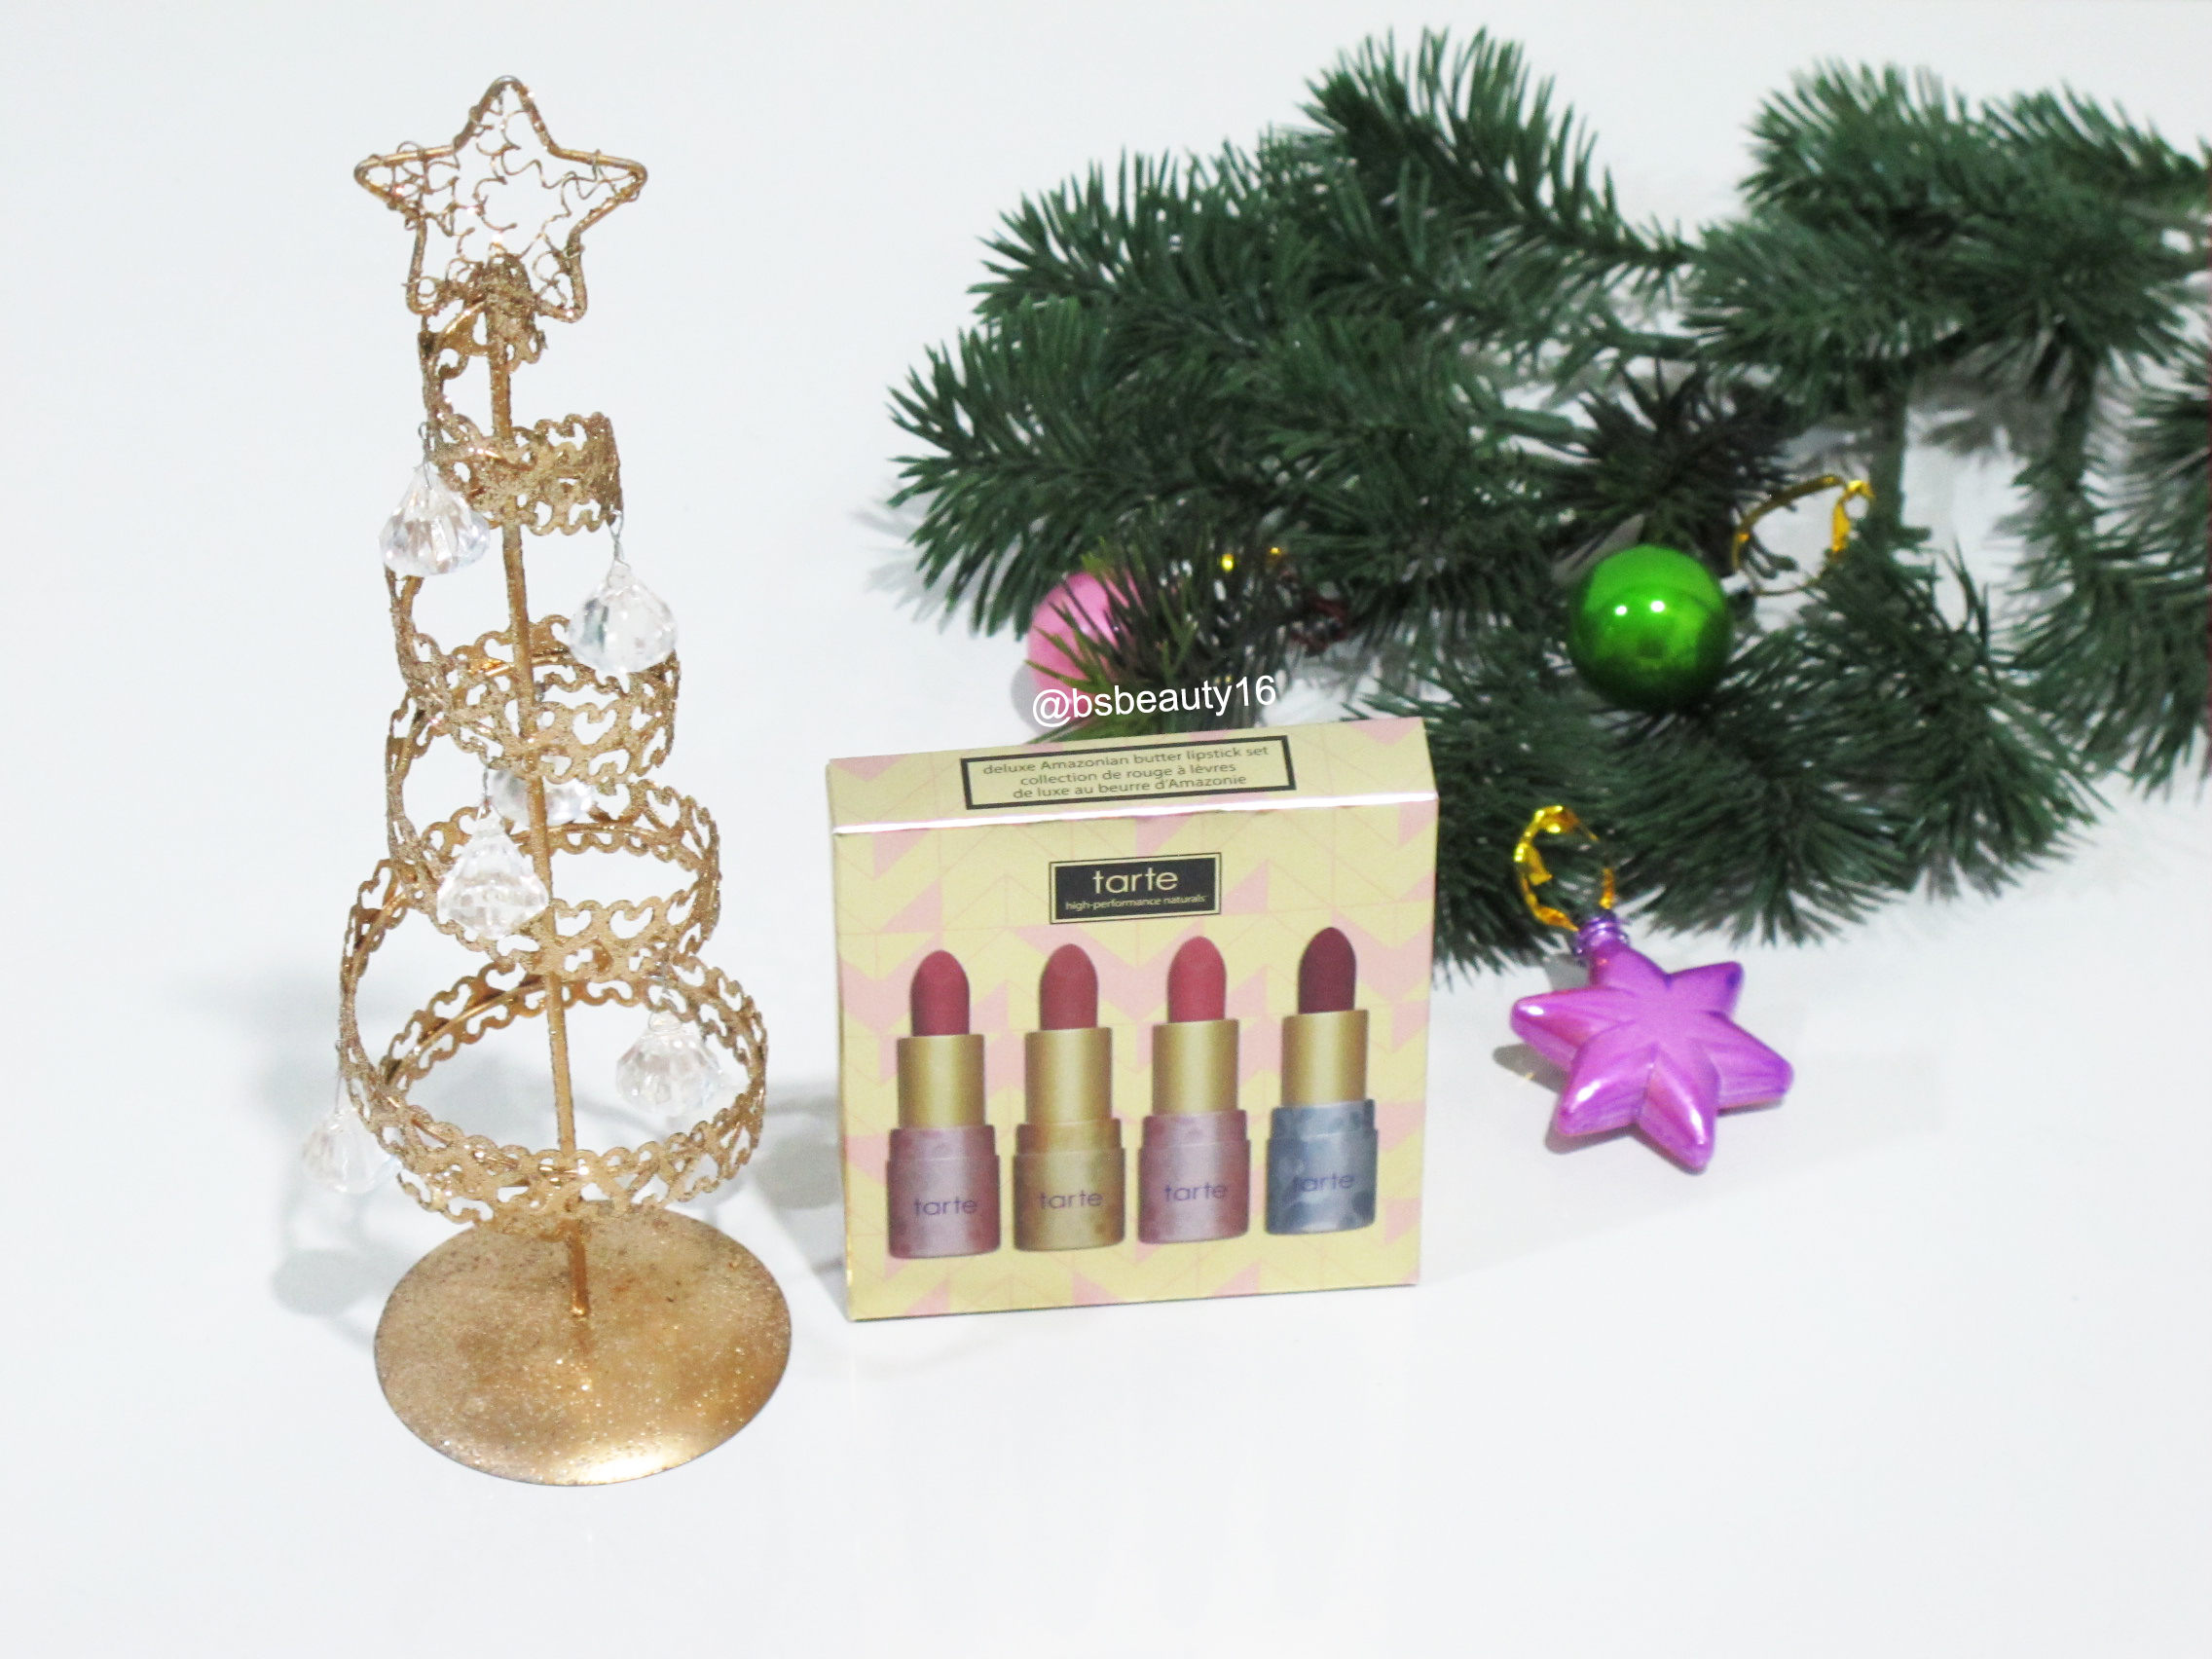 TARTE HOLIDAY COLLECTION 2015 – Deluxe Amazonian Butter Lipstick Set